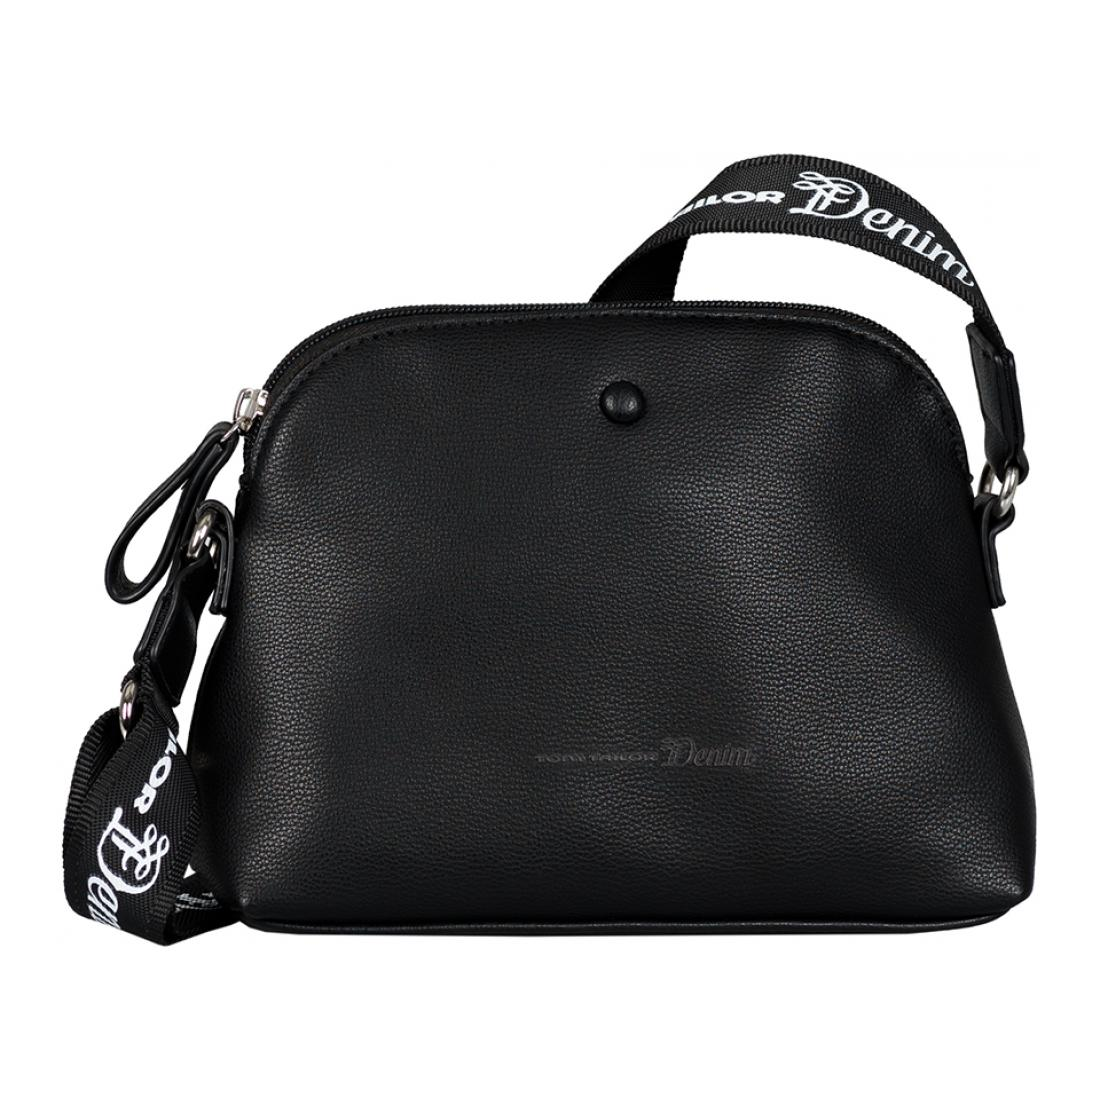 Tom Tailor Tasche LINEA Cross bag